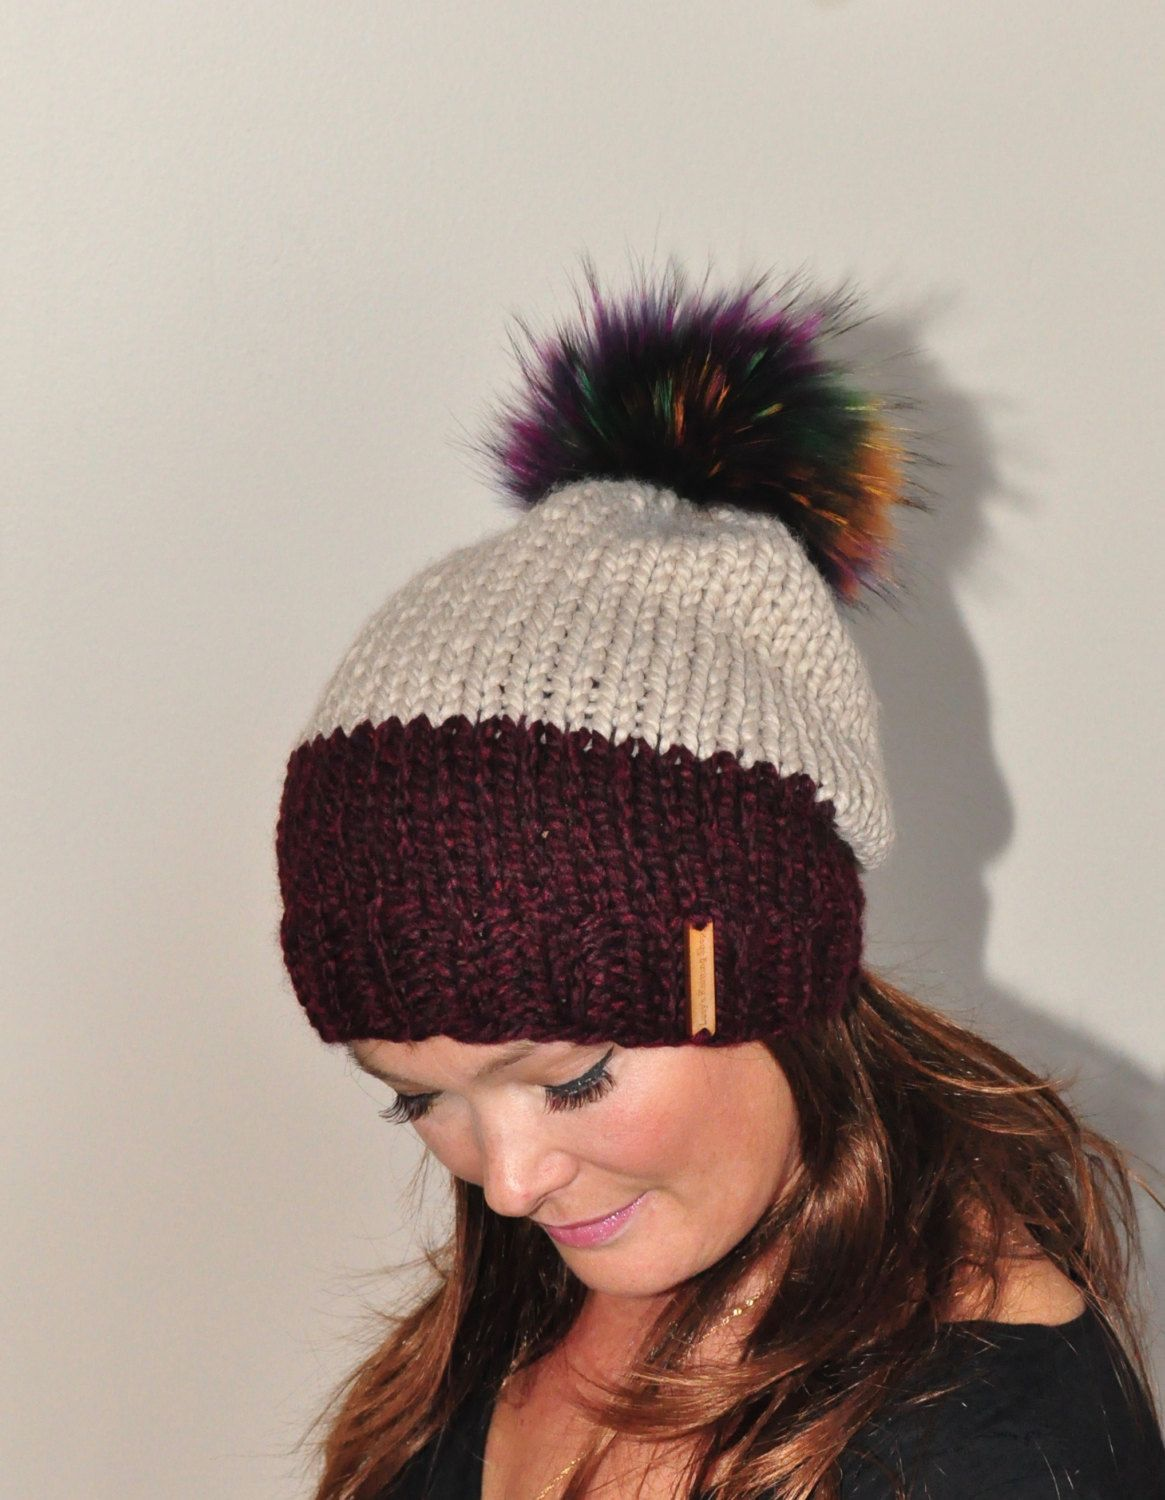 fa5e52be6b4 Fur Pompom Beanie Two Tone Slouchy Hat Women Hat Winter Hat CHOOSE COLORS  Burgundy Taupe Chunky Knit Hat Christmas Gift by lucymir on Etsy